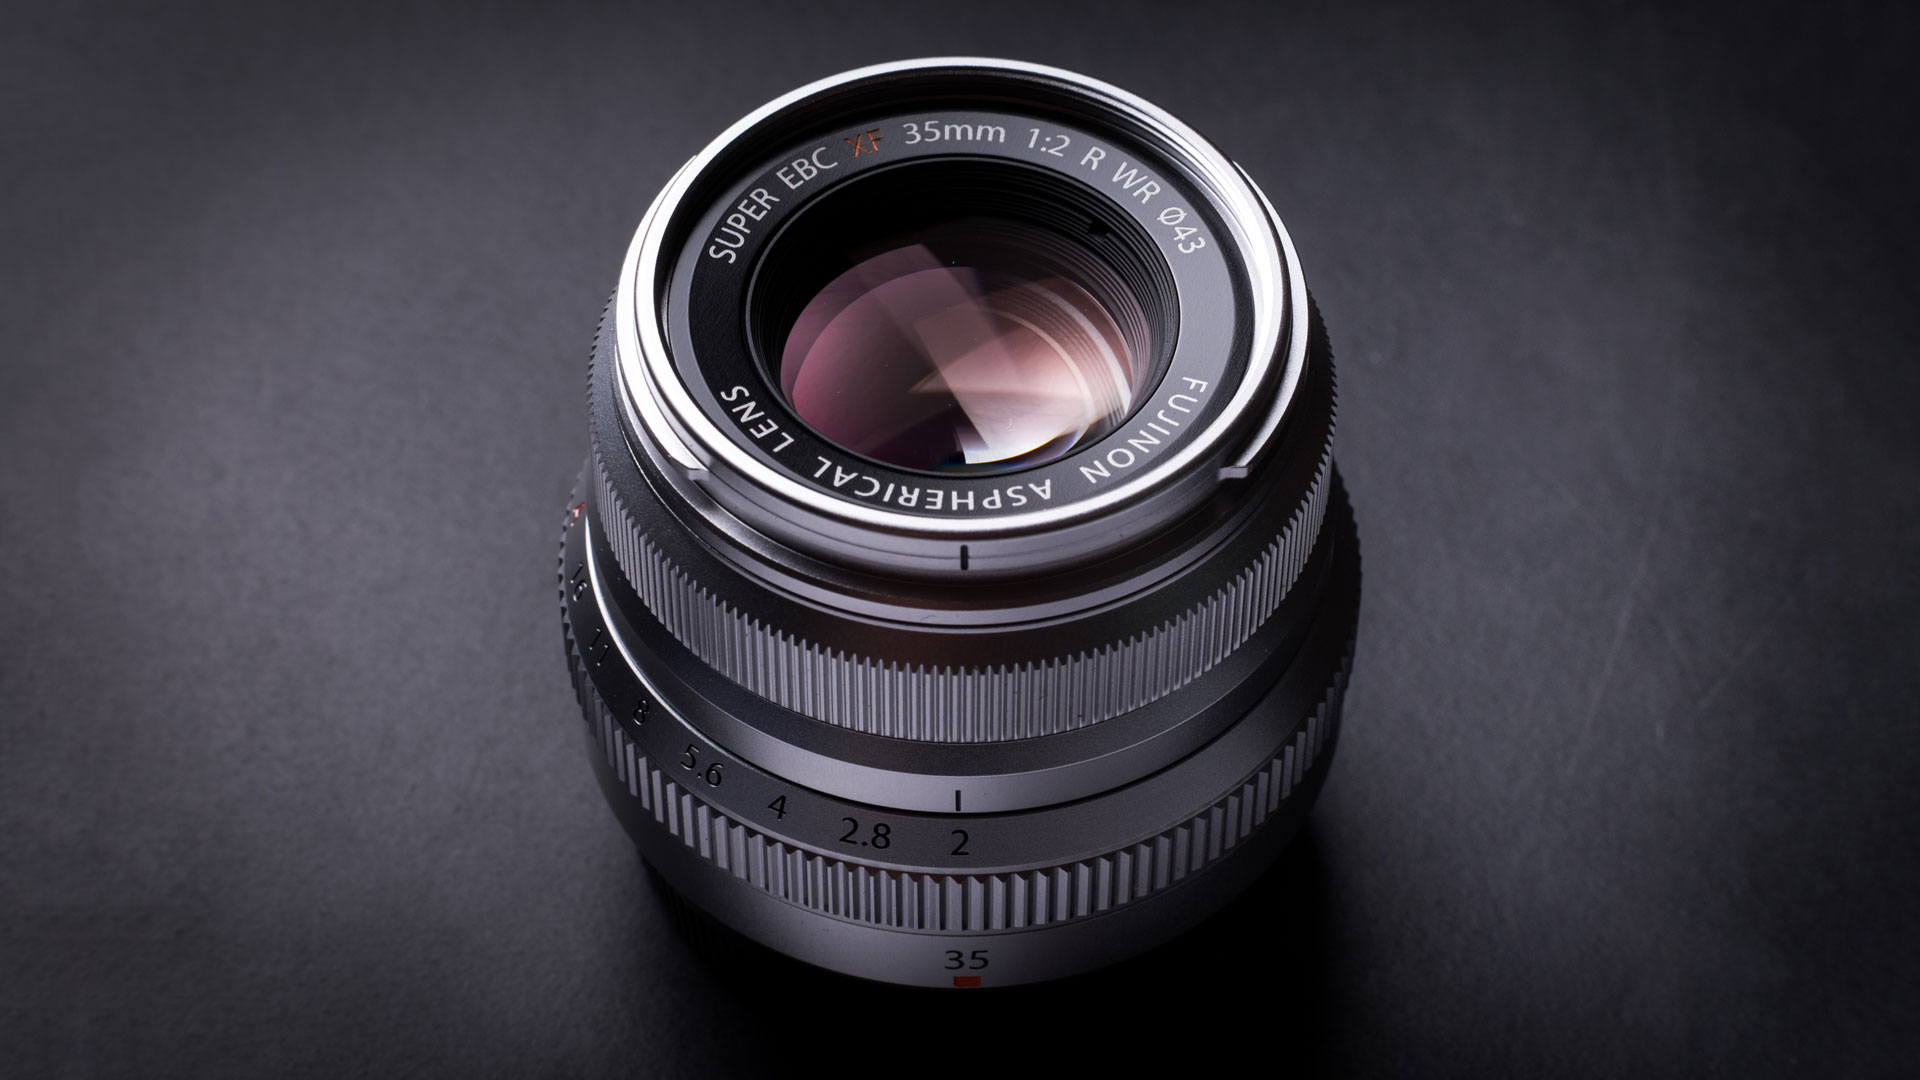 Wayfair Len fujifilm announces the weather sealed lens you ve been waiting for